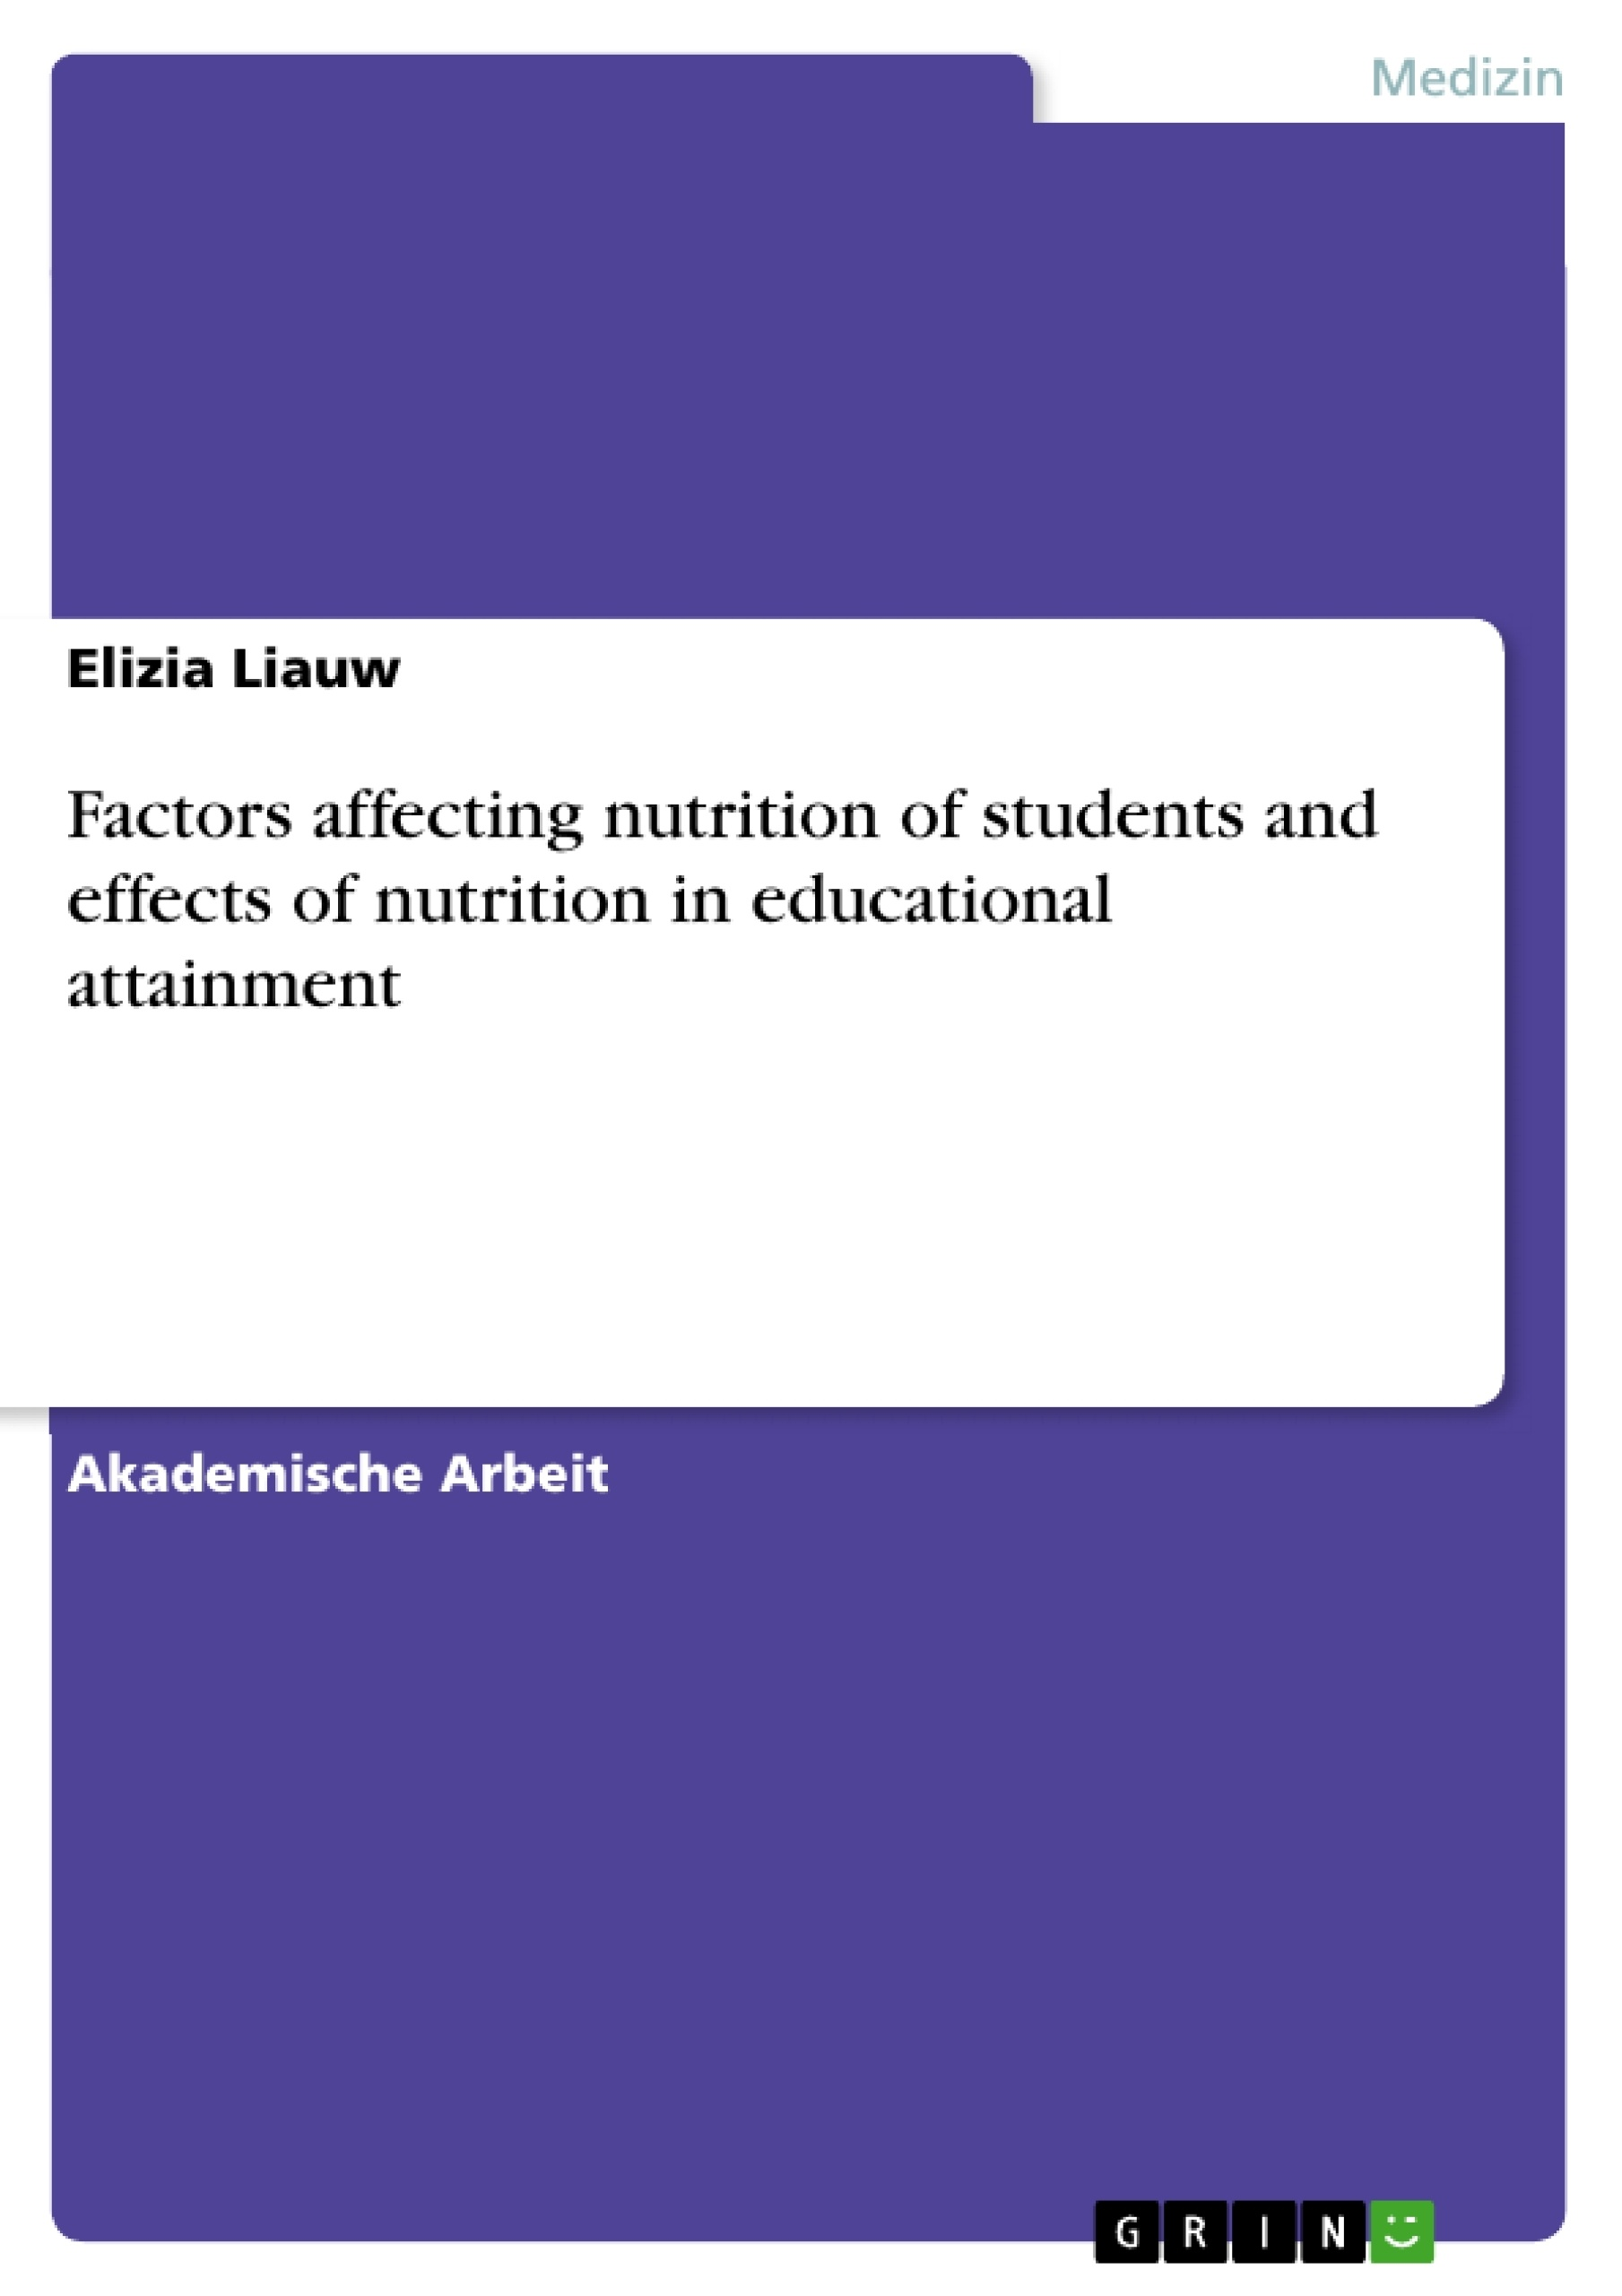 Titel: Factors affecting nutrition of students and effects of nutrition in educational attainment